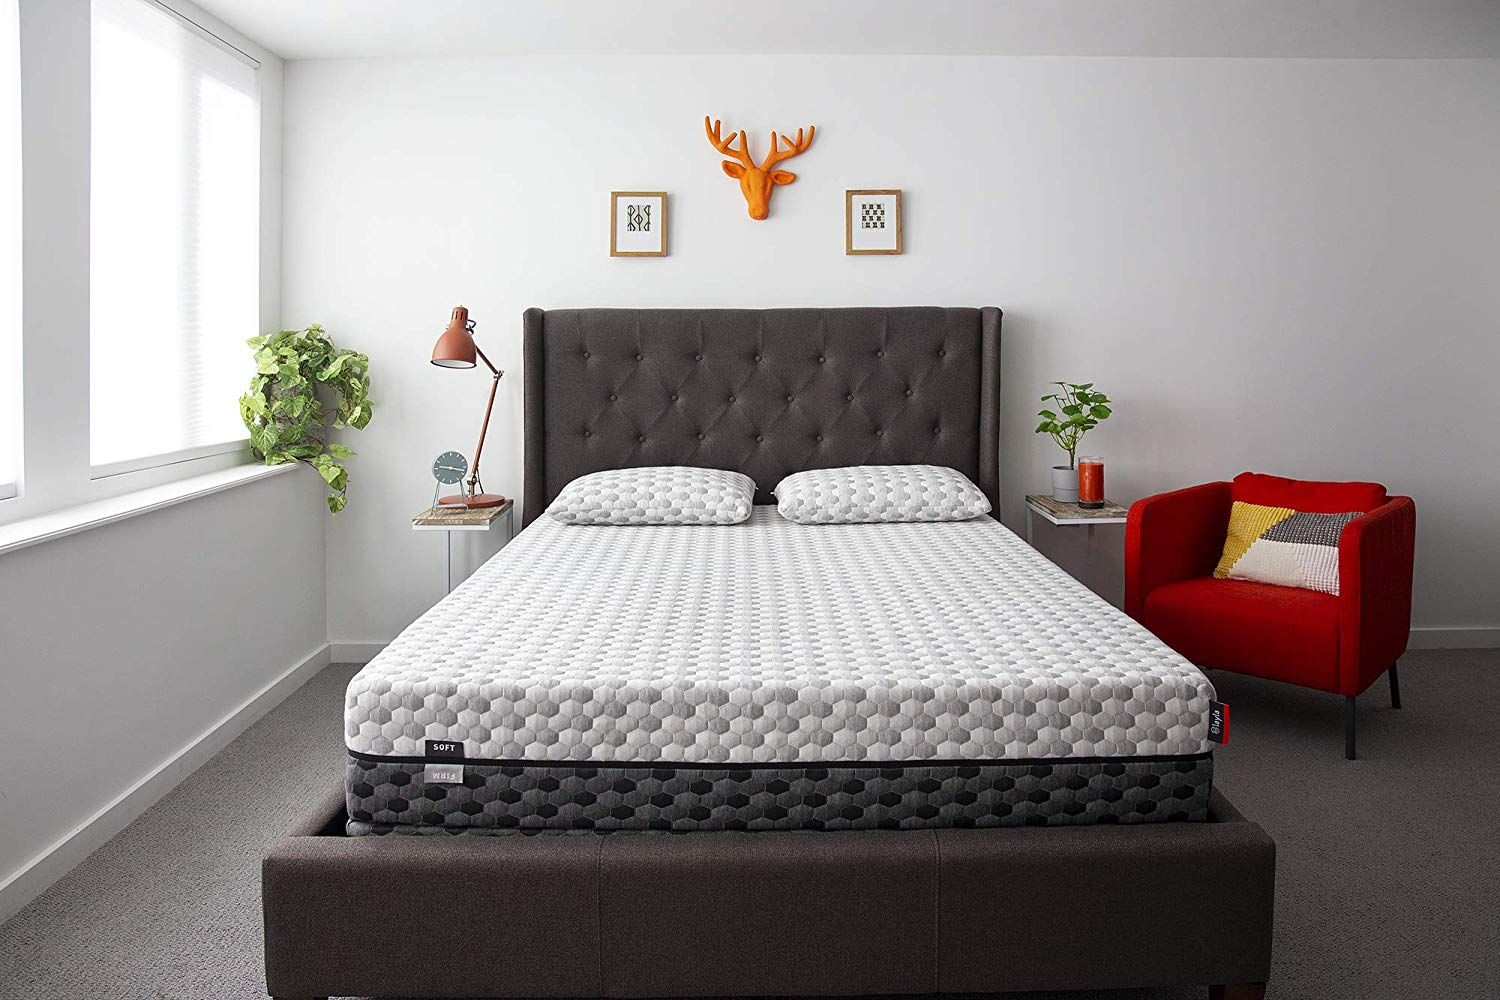 Best Bed Cooling Systems Bed Cooling System Bed Fan Cool Beds